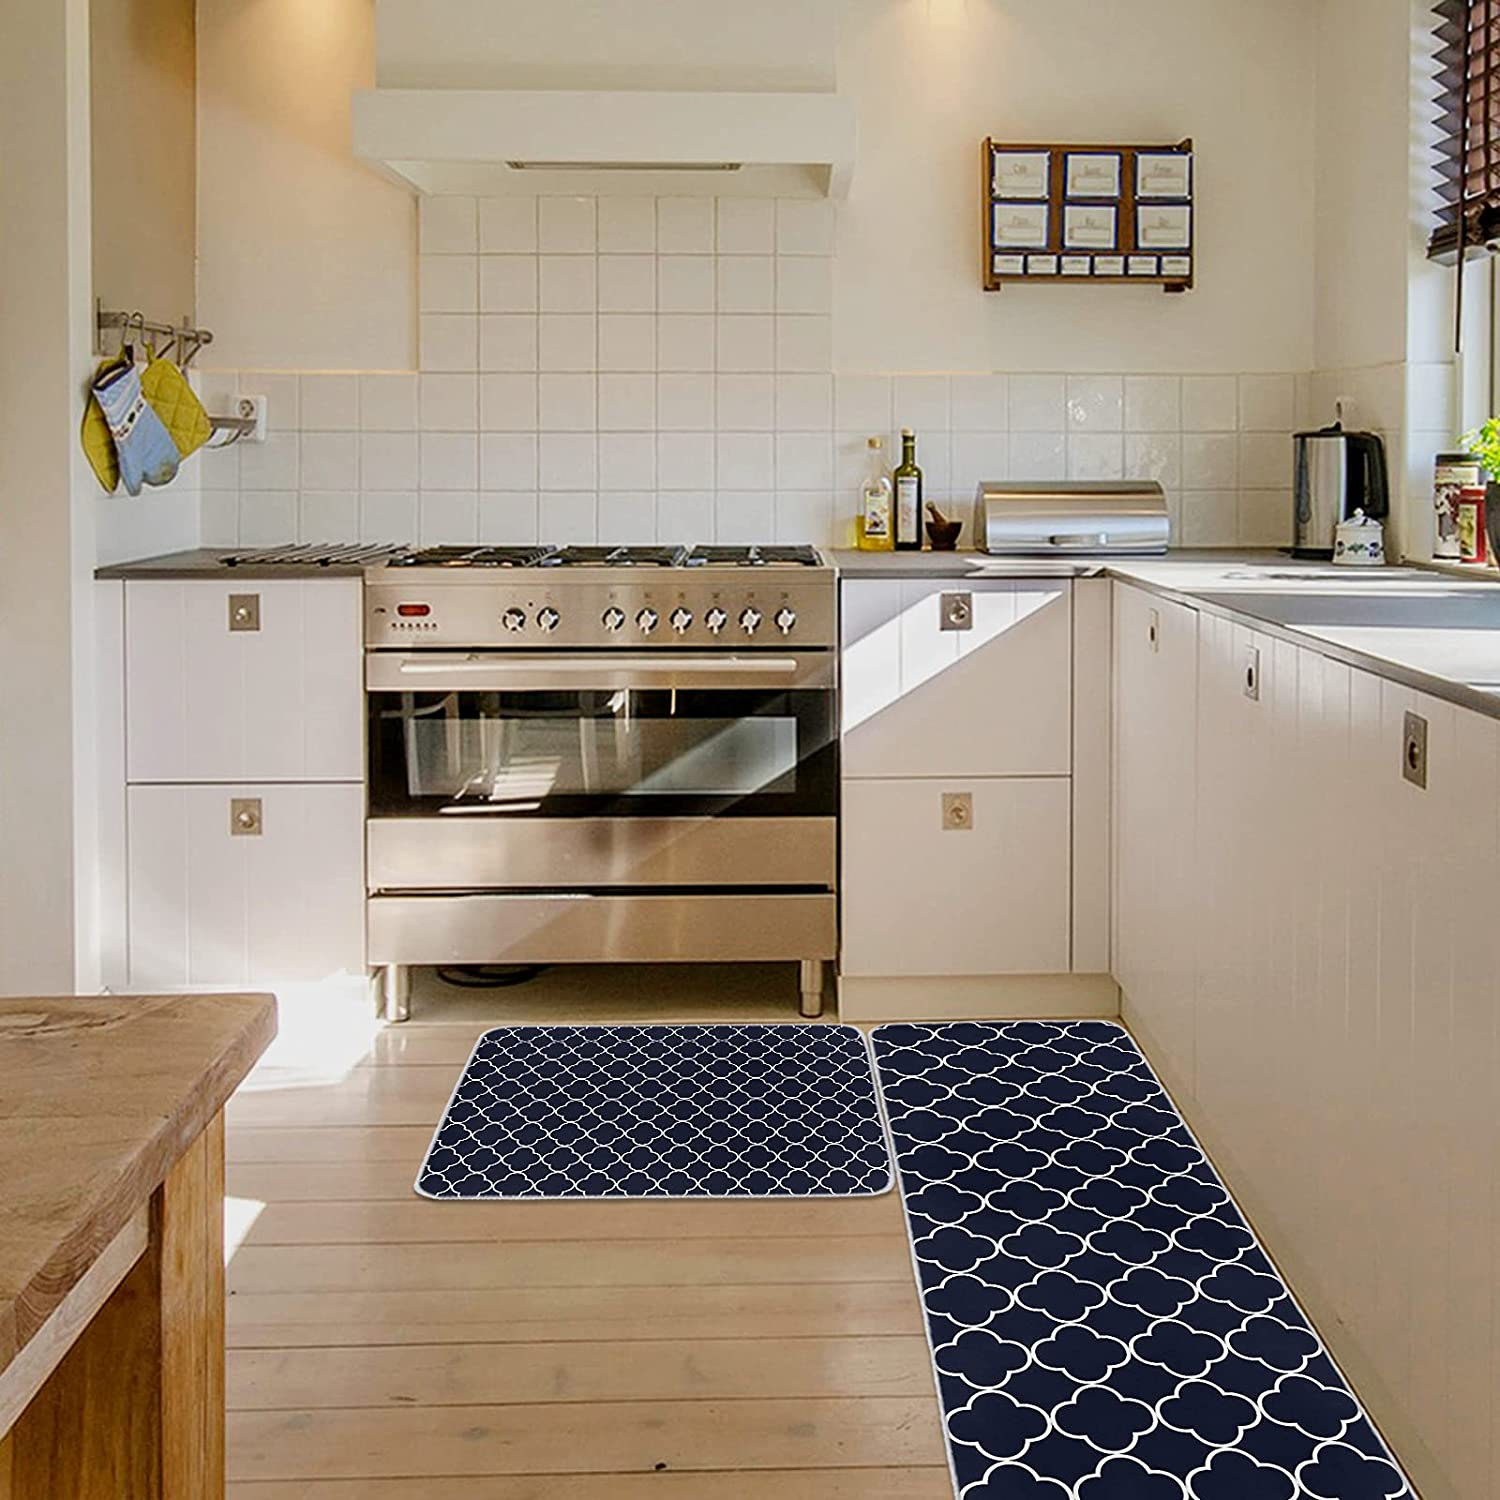 ZEREAA Absorbent Kitchen Rugs Sale price Recommendation and Blue Moroccan Vector Set Mats